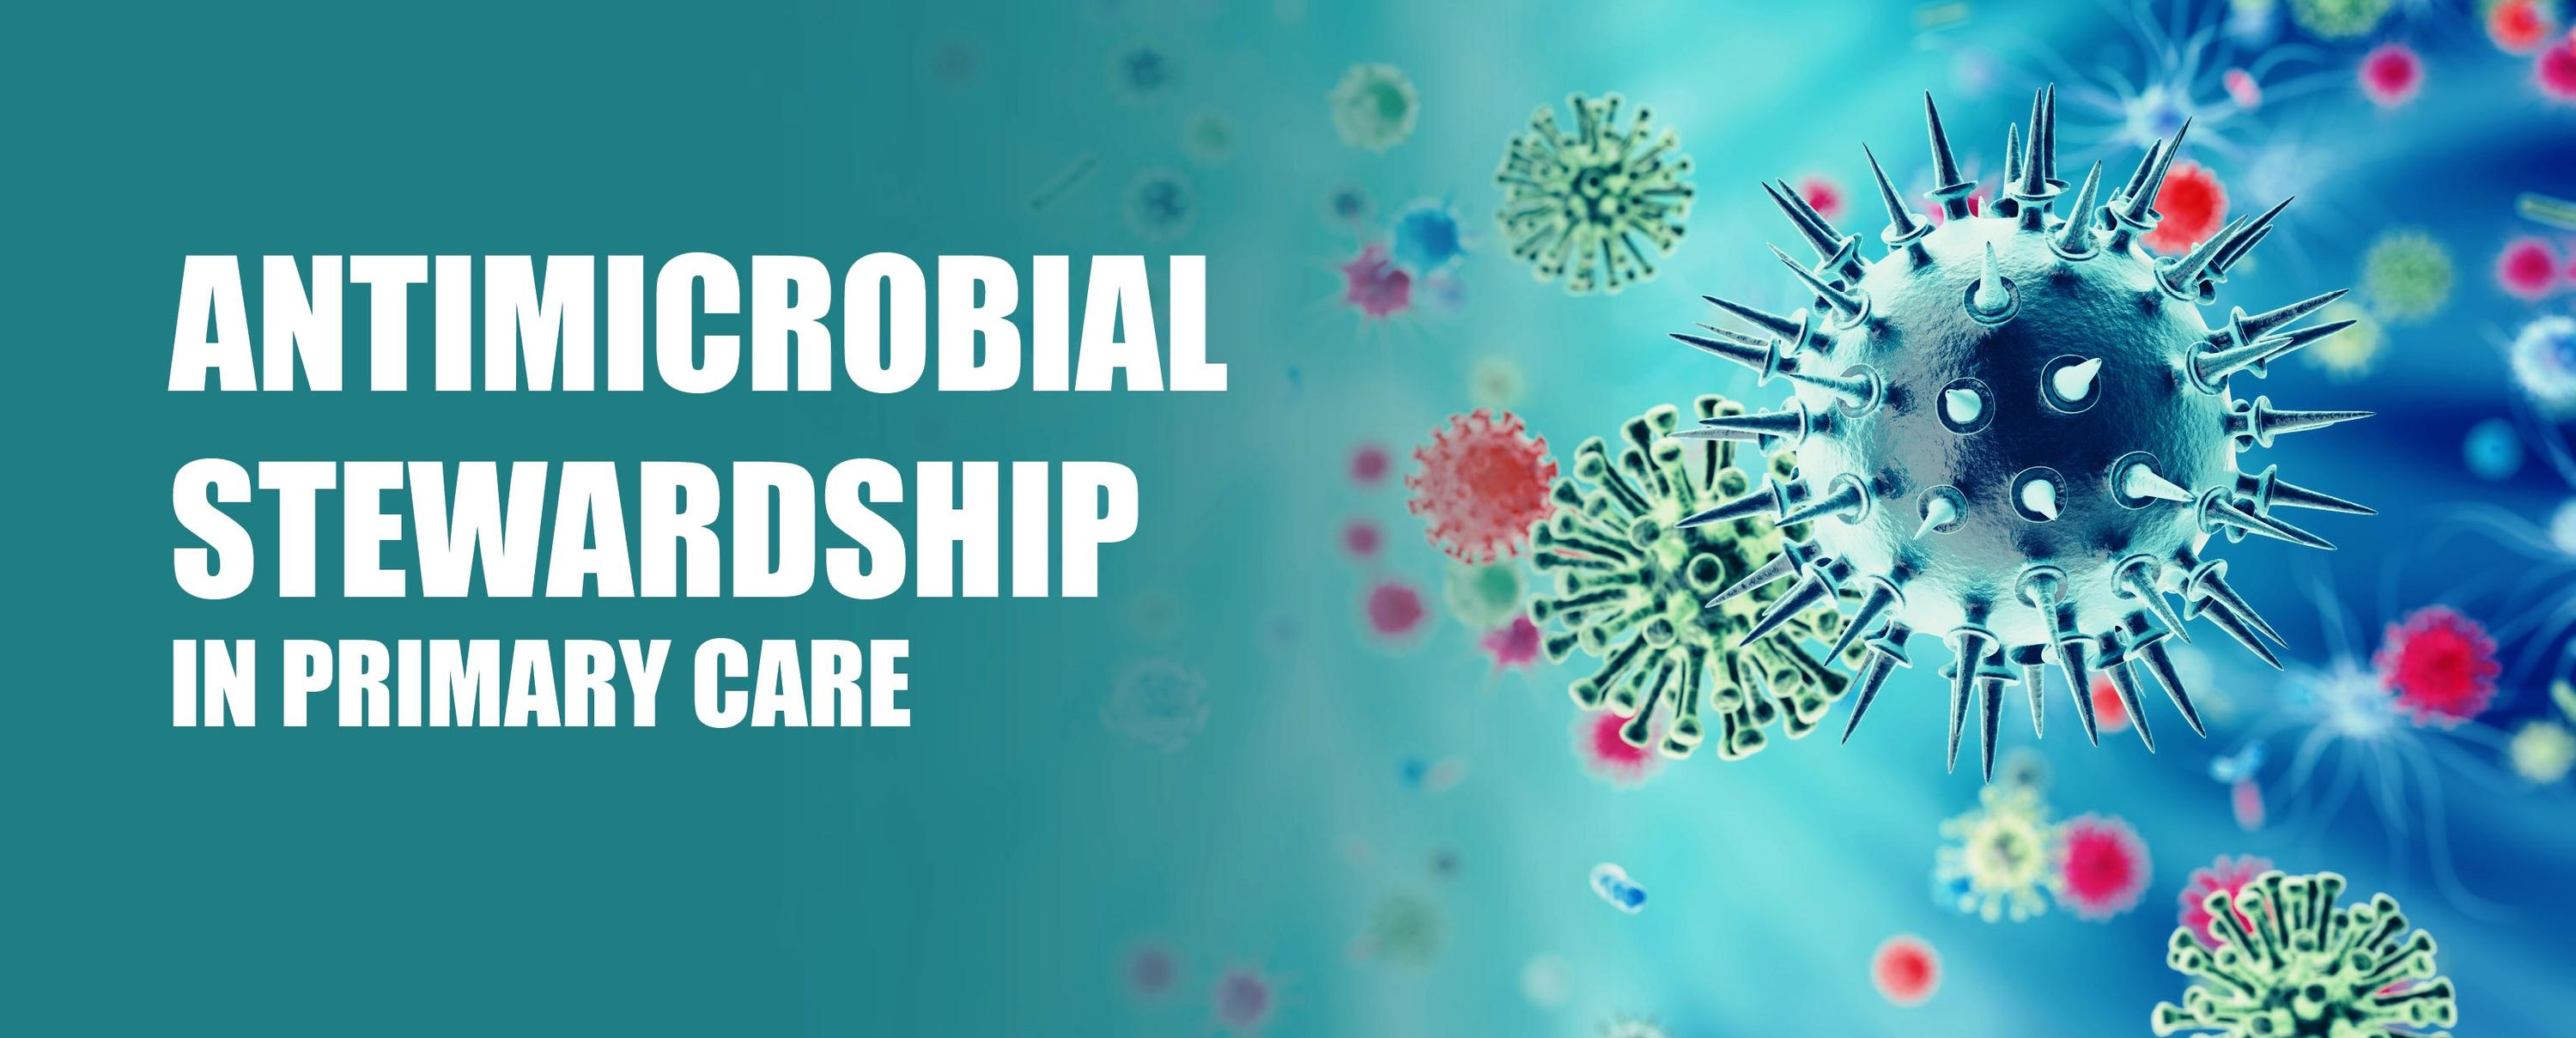 Antimicrobial stewardship in primary care. Colourful images of bacteria.